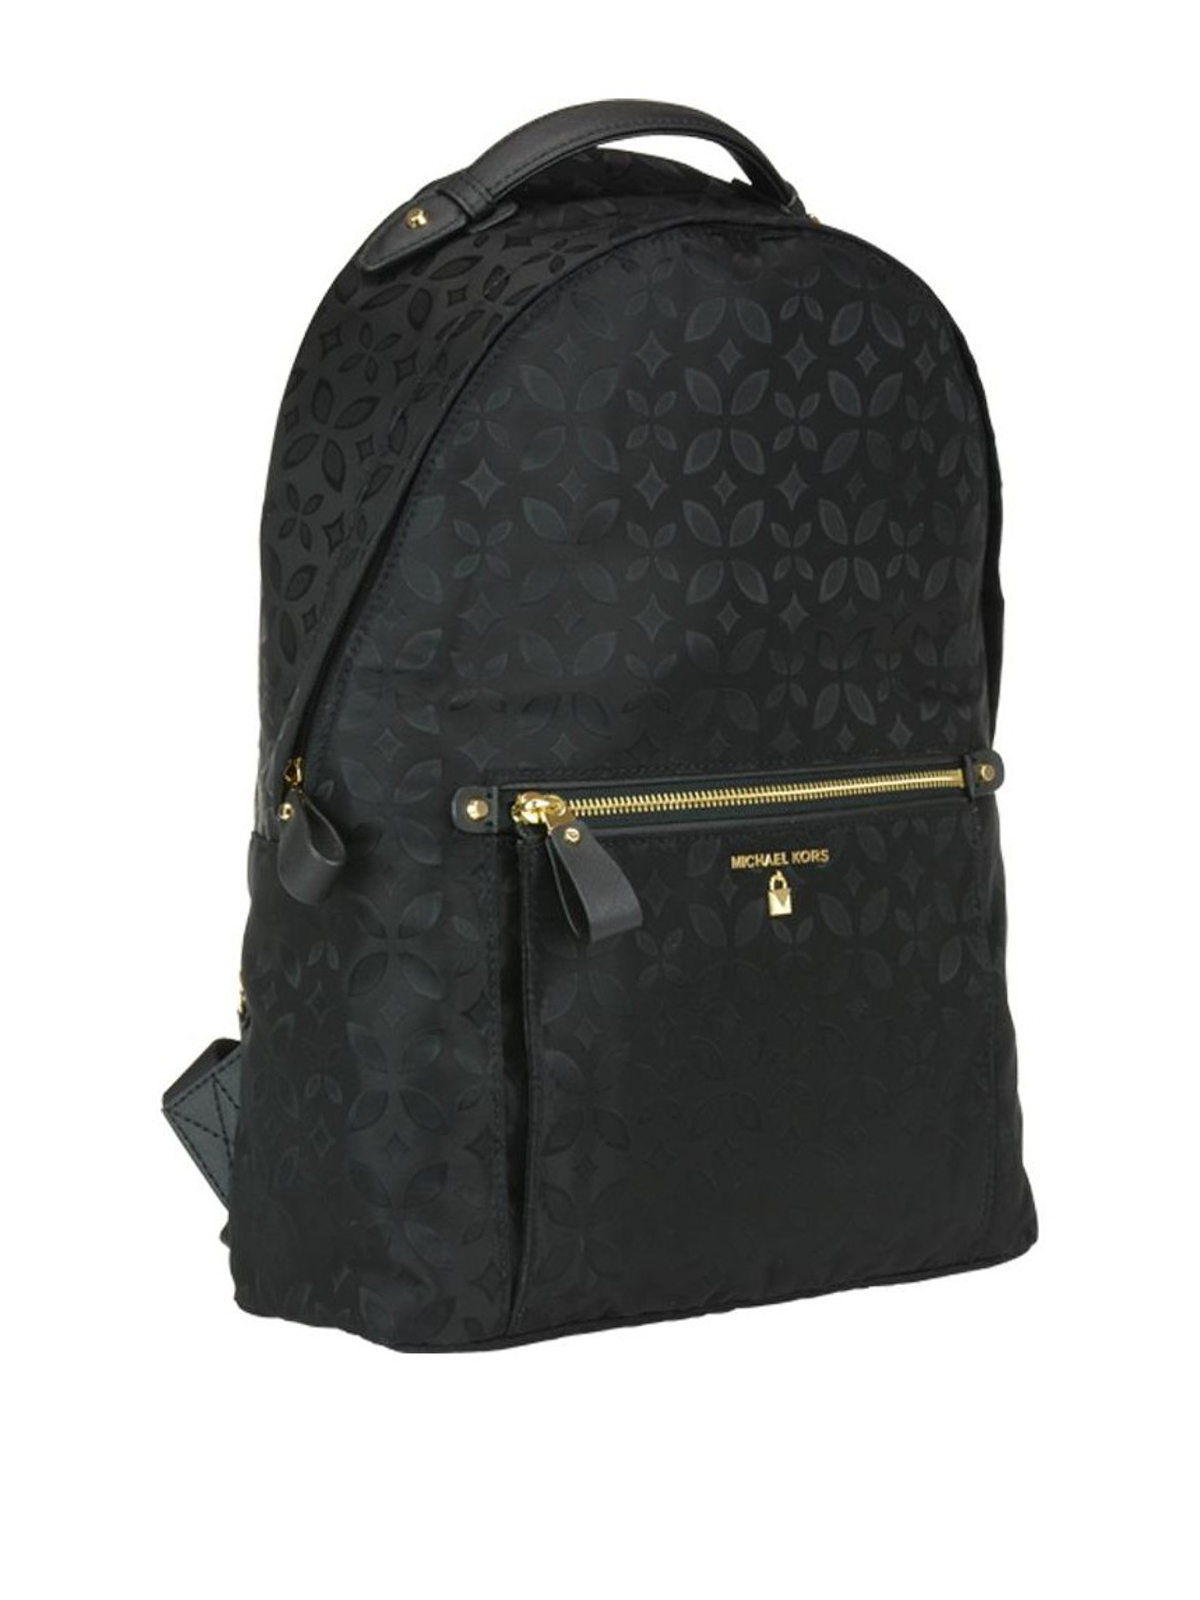 5e48a41f1500 MICHAEL KORS: backpacks online - Kelsey black floral nylon large backpack